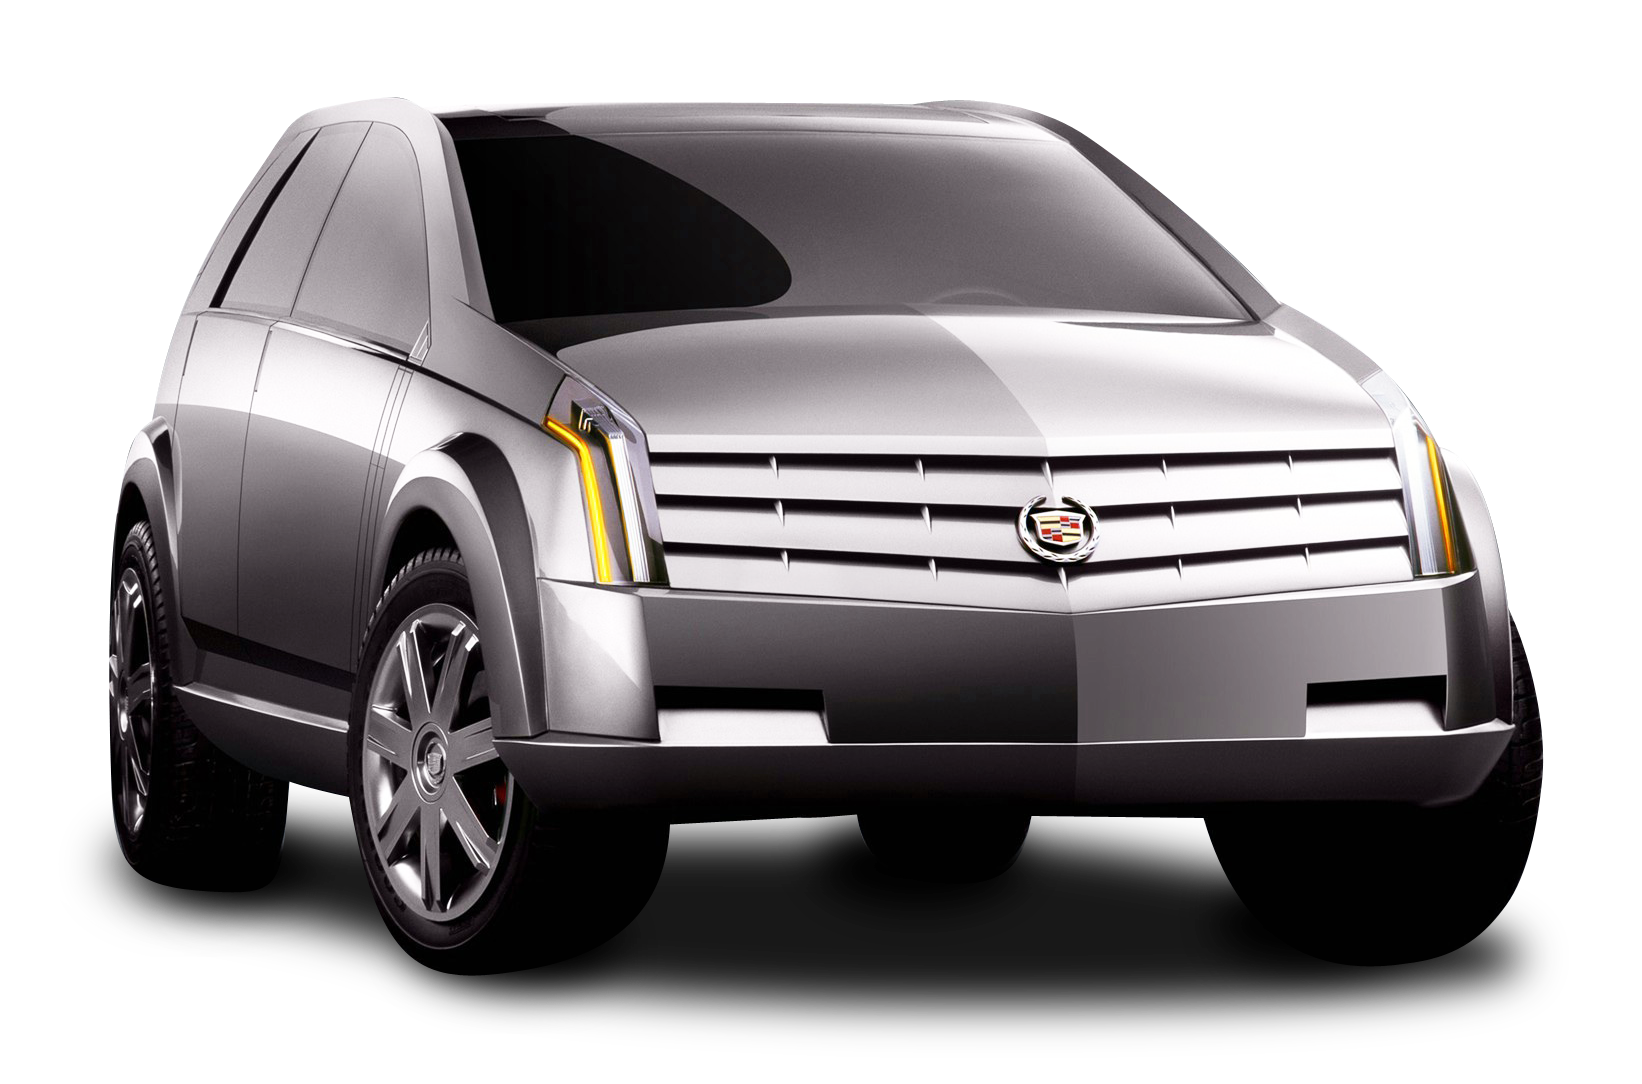 Grey car clipart picture free library Cadillac Vizon Grey Car PNG Image - PurePNG | Free transparent CC0 ... picture free library